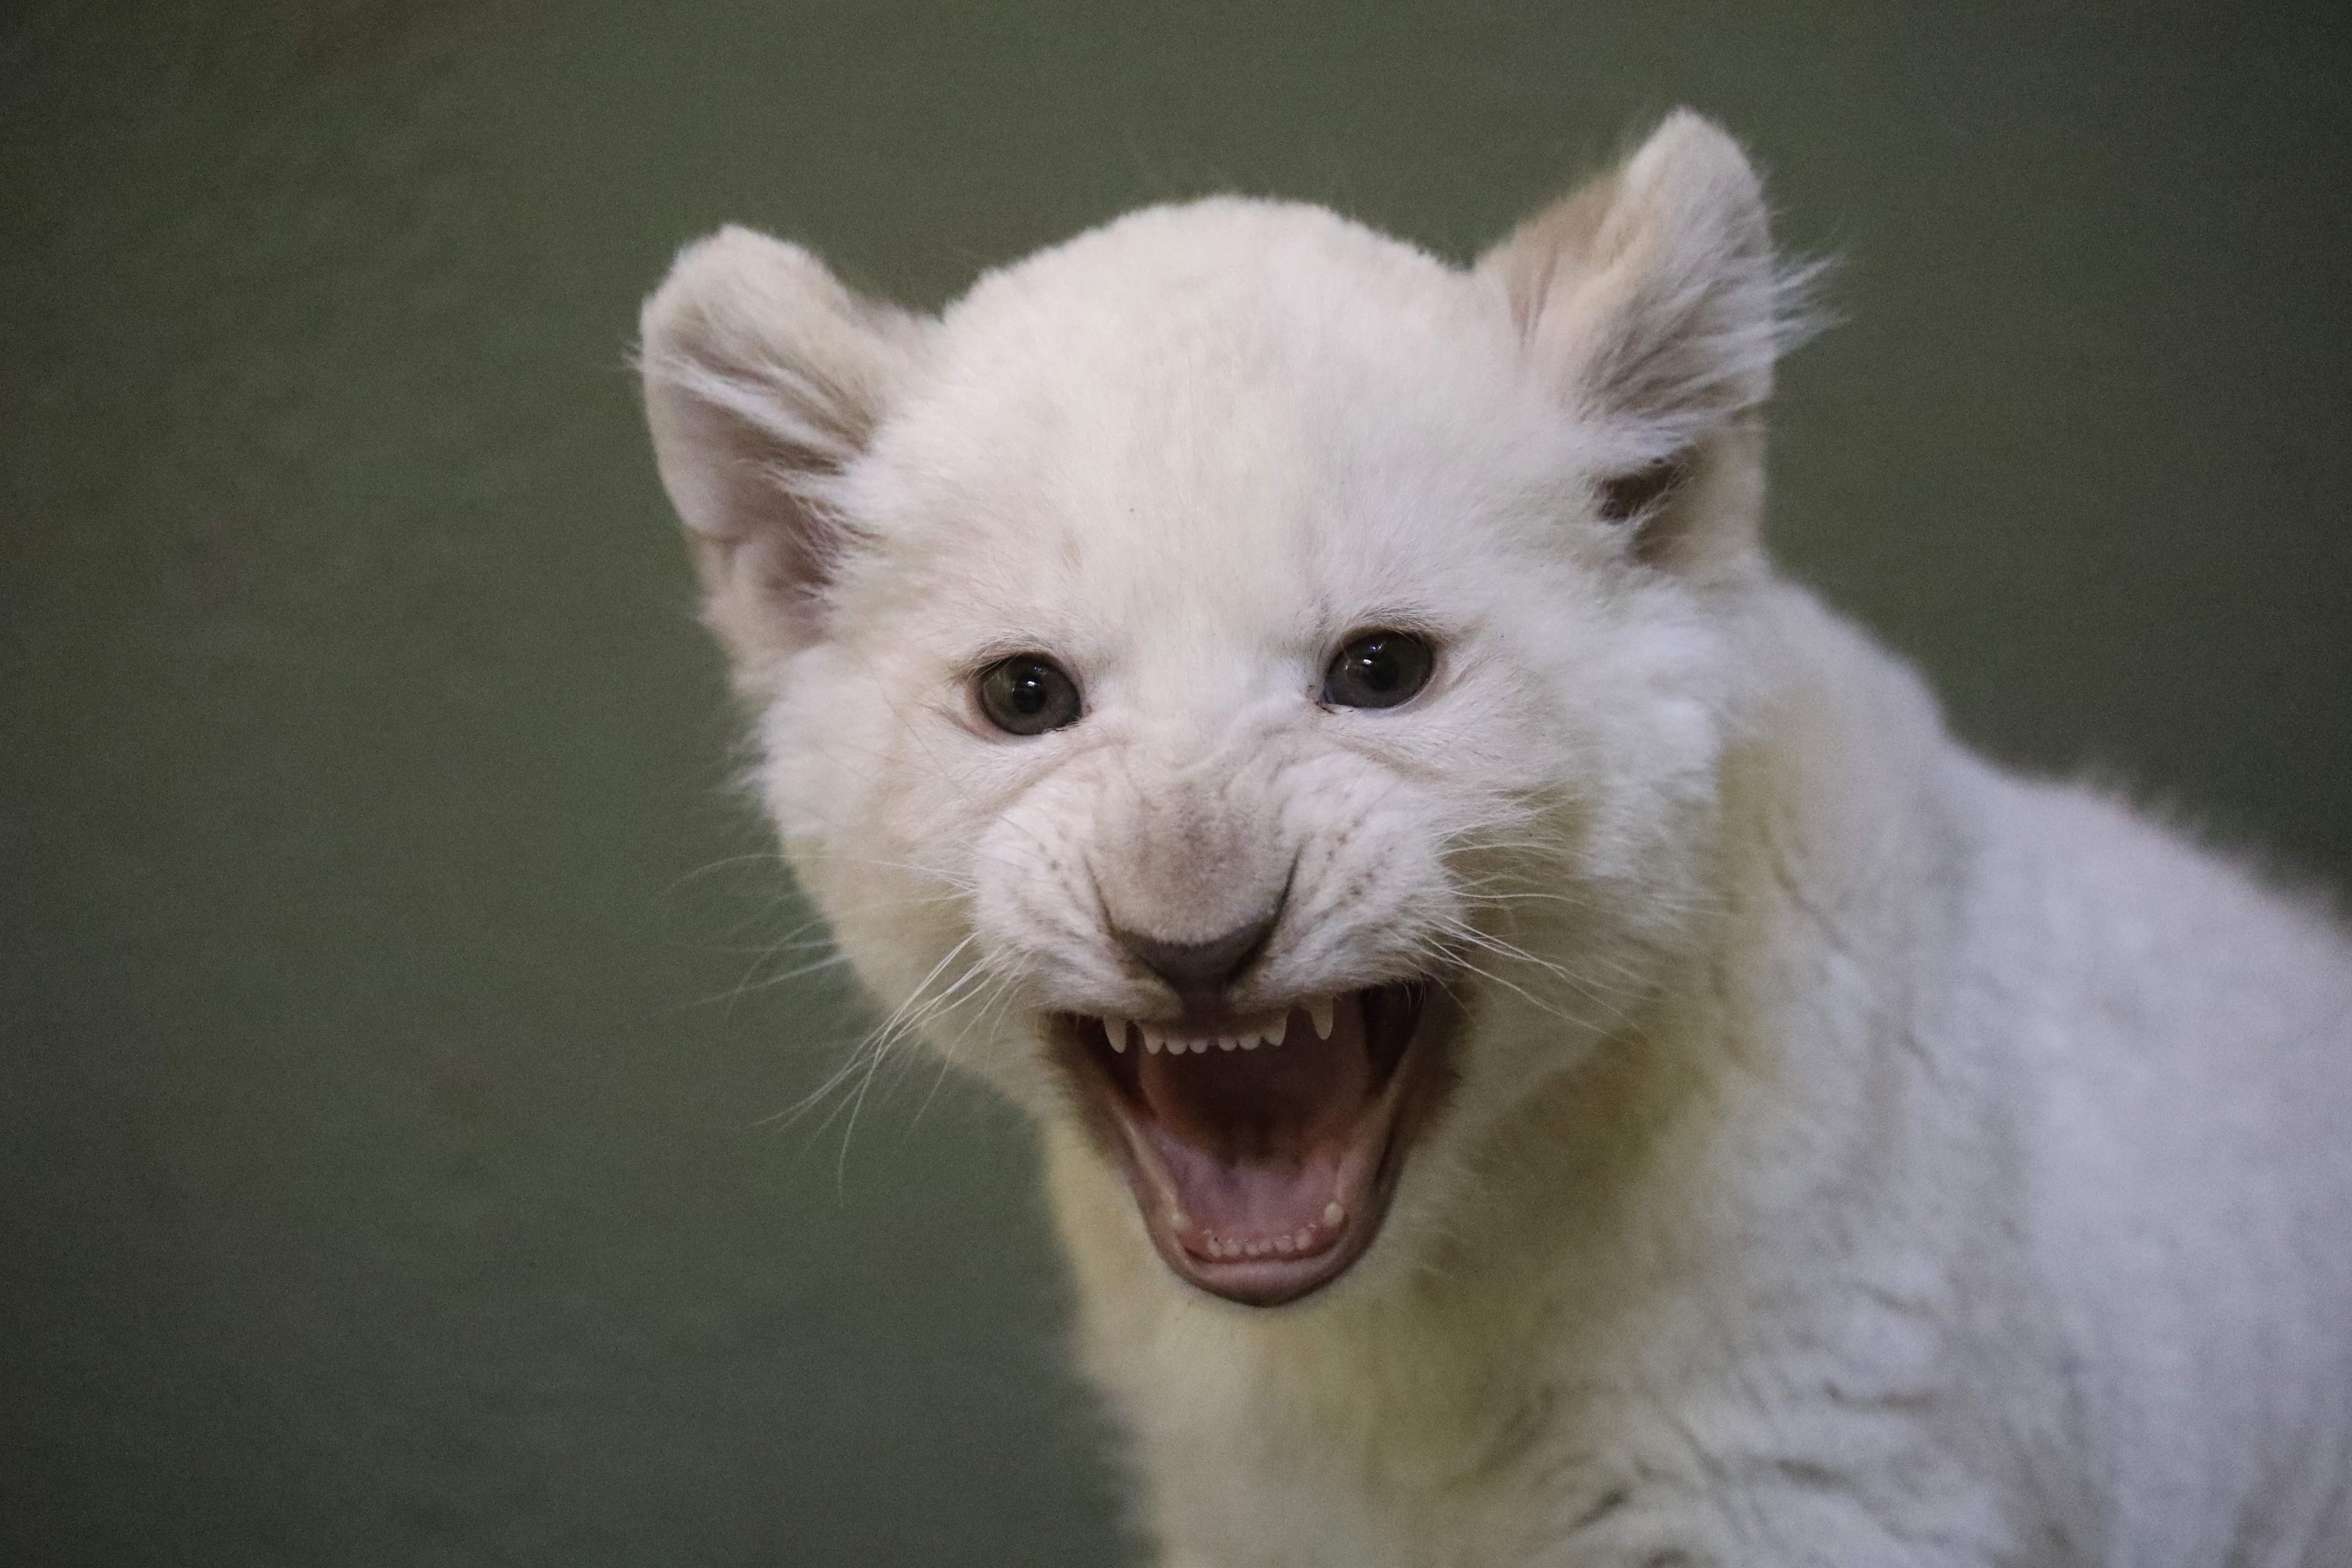 One of two white lion cubs hisses in their enclosure during their first outing at the zoo in Hodonin, southern Moravia, 60 km South of Brno, before their vaccination, on February 5, 2019. - The lion cubs were born at the end of 2018.